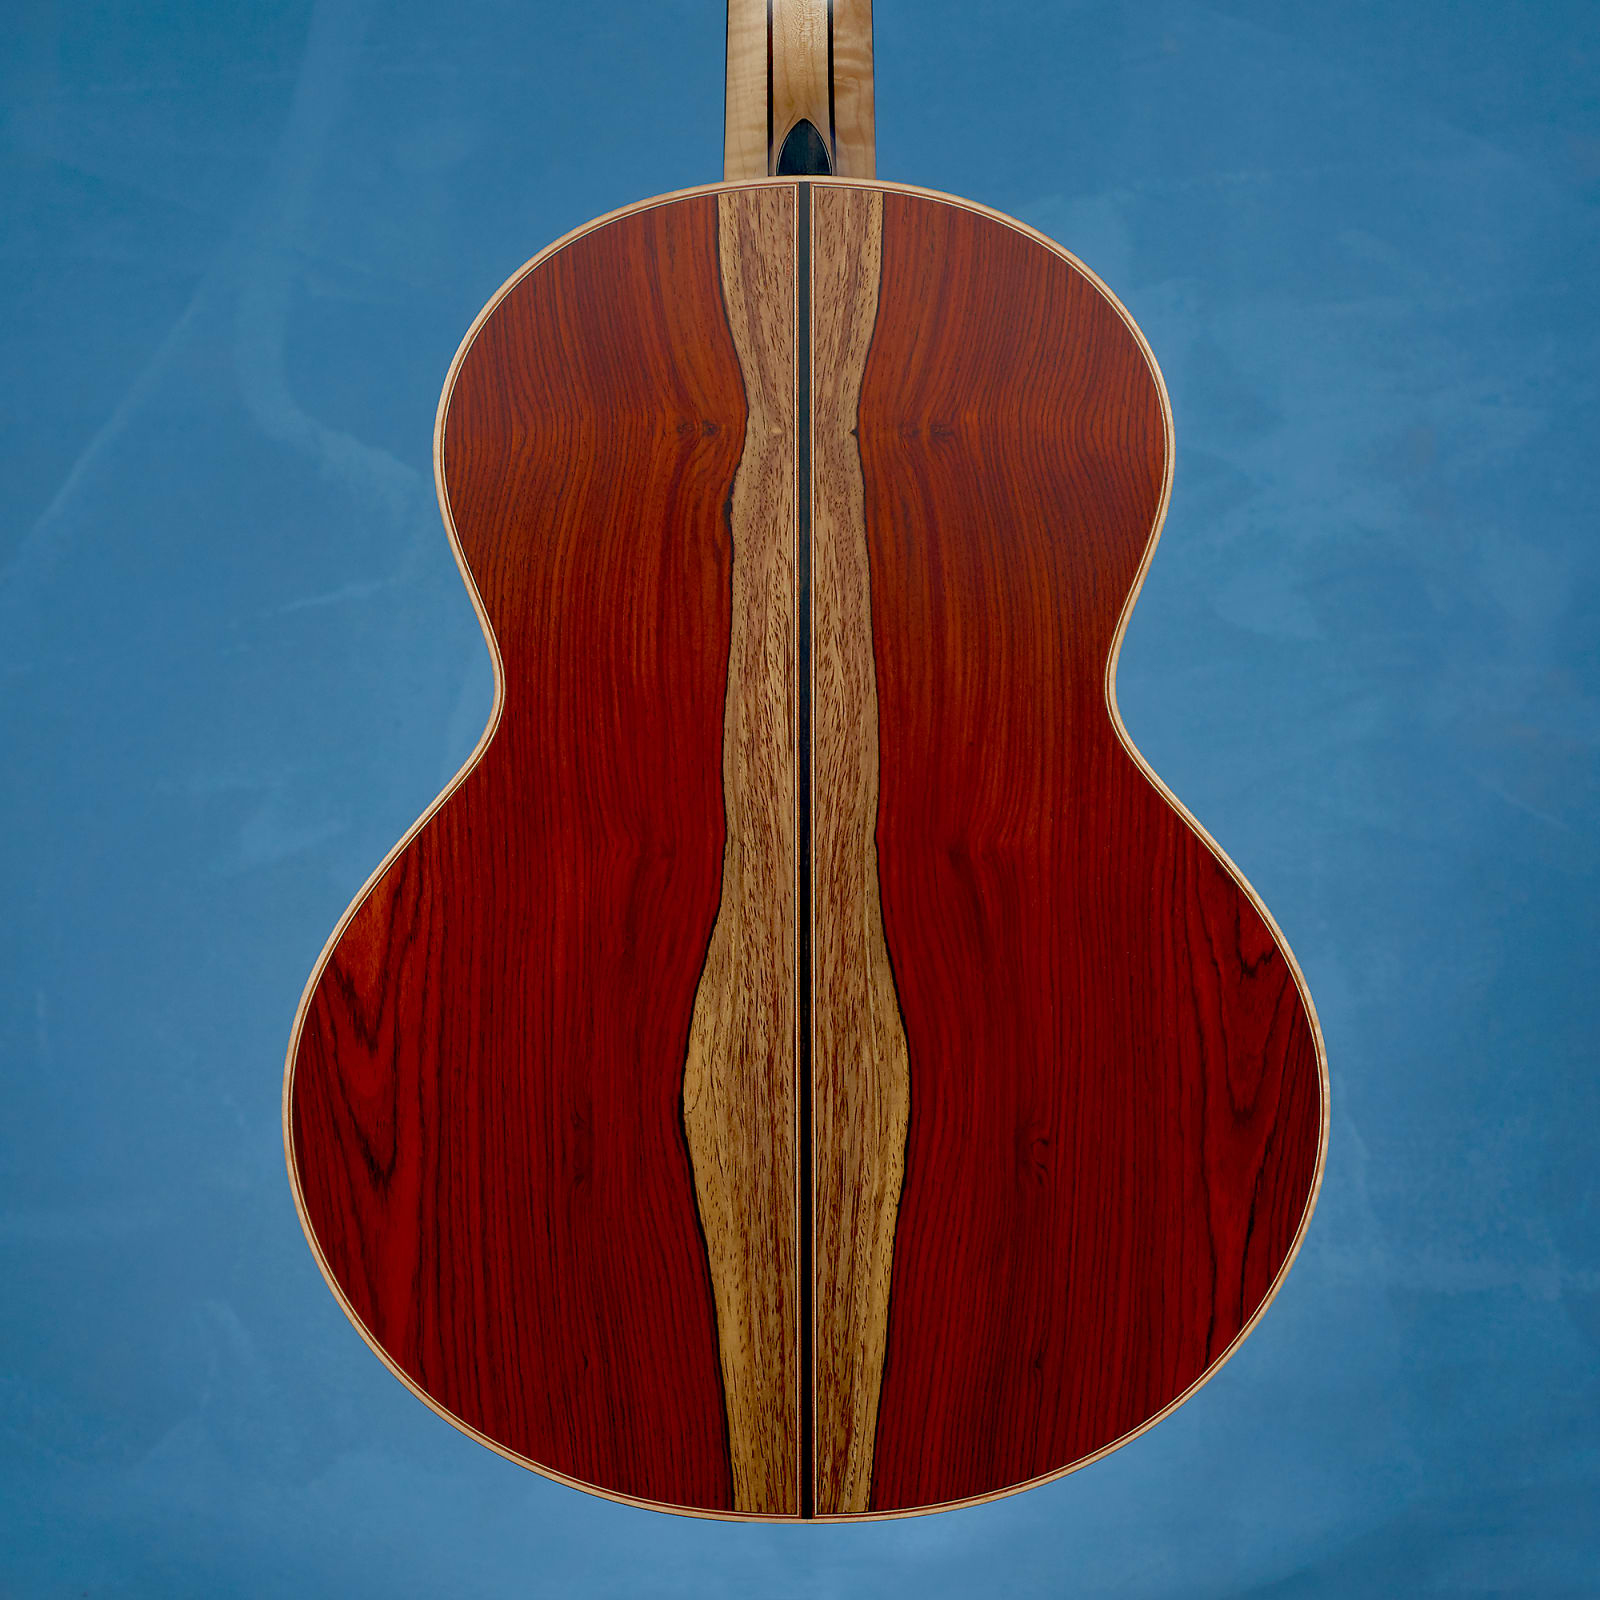 Lowden S-50 NAMM 2019 Special Cocobolo/Sinker Redwood NOS